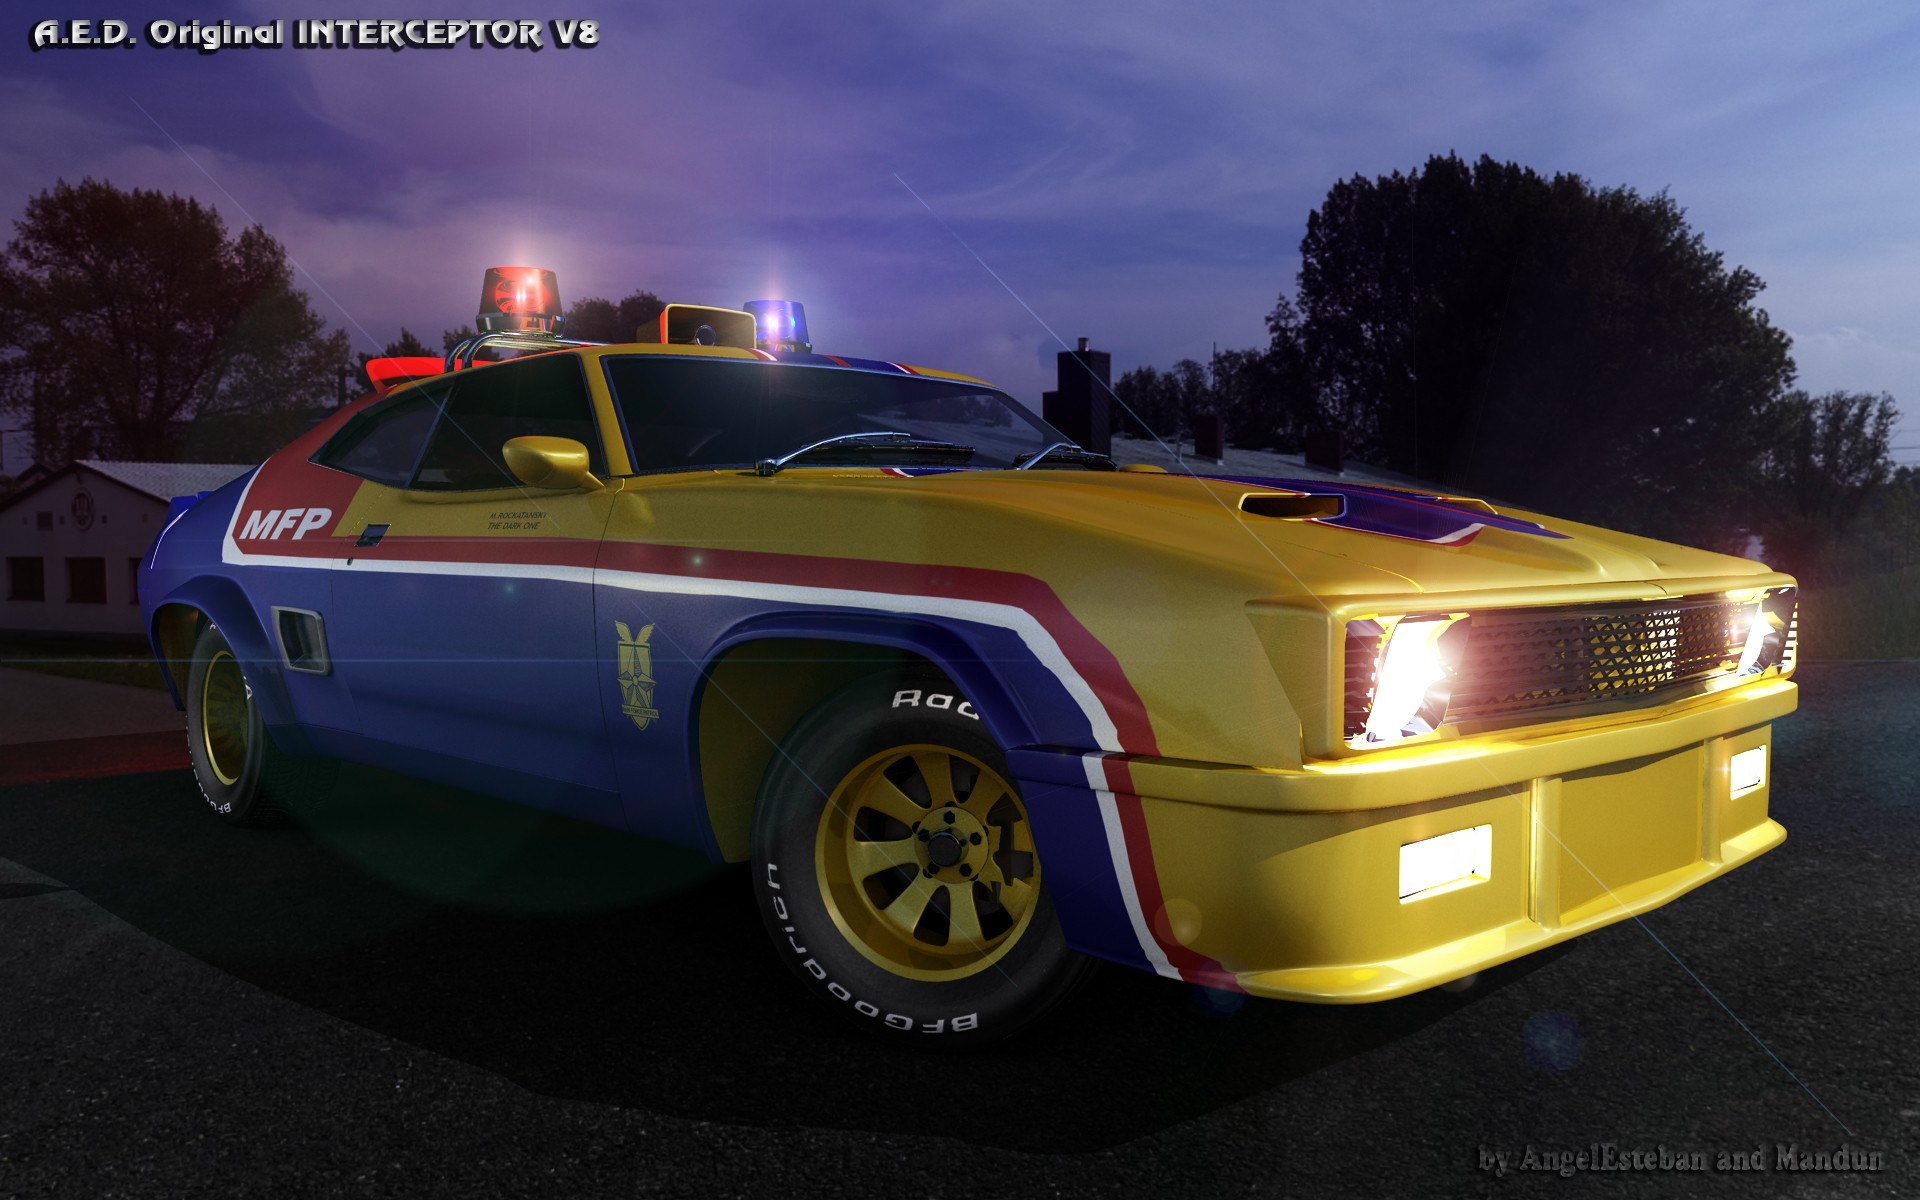 INTERCEPTOR V8-5 par angelesteban